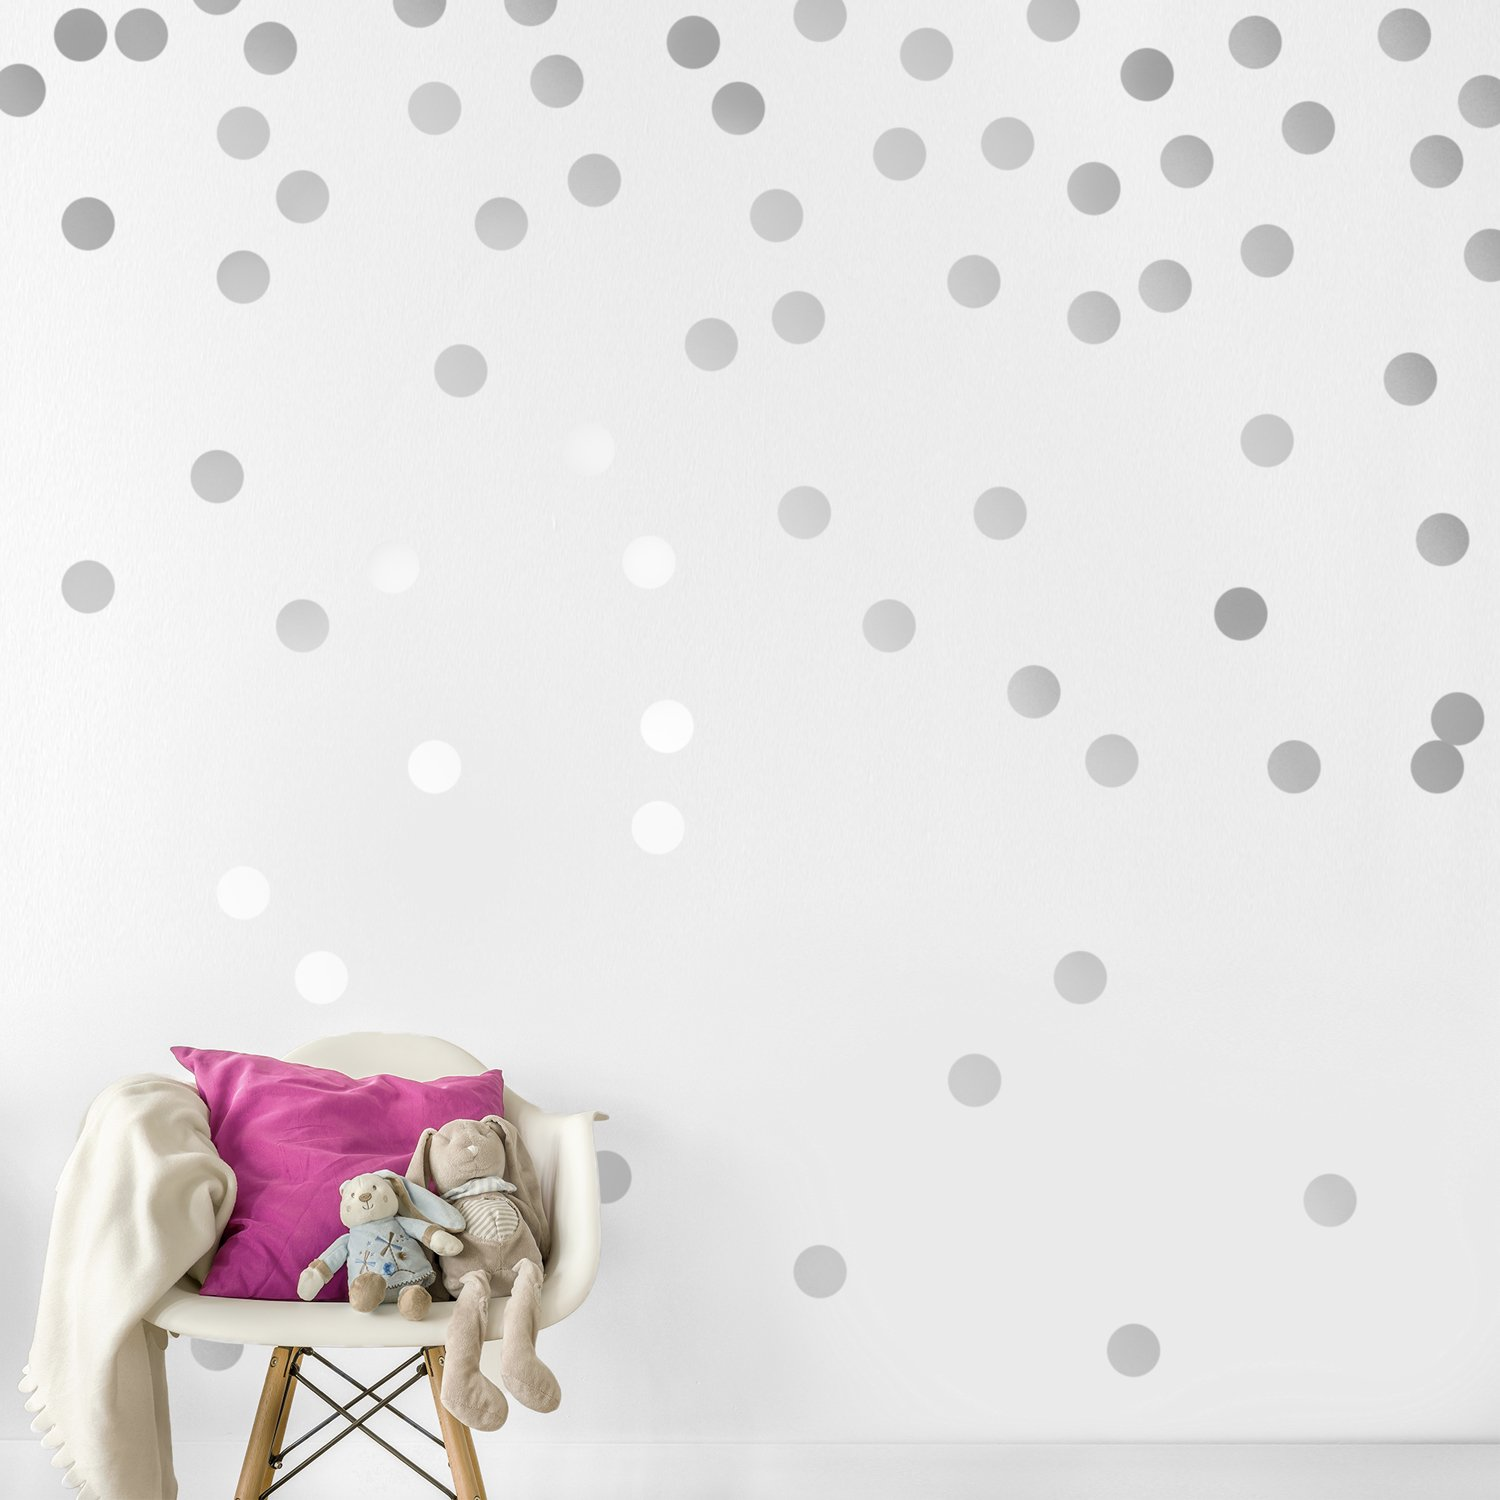 Silver Wall Decal Dots (200 Decals) | Easy Peel & Stick + Safe on Walls Paint | Removable Metallic Vinyl Polka Dot Decor | Round Circle Art Glitter Sayings Sticker Large Paper Sheet Set Nursery Room